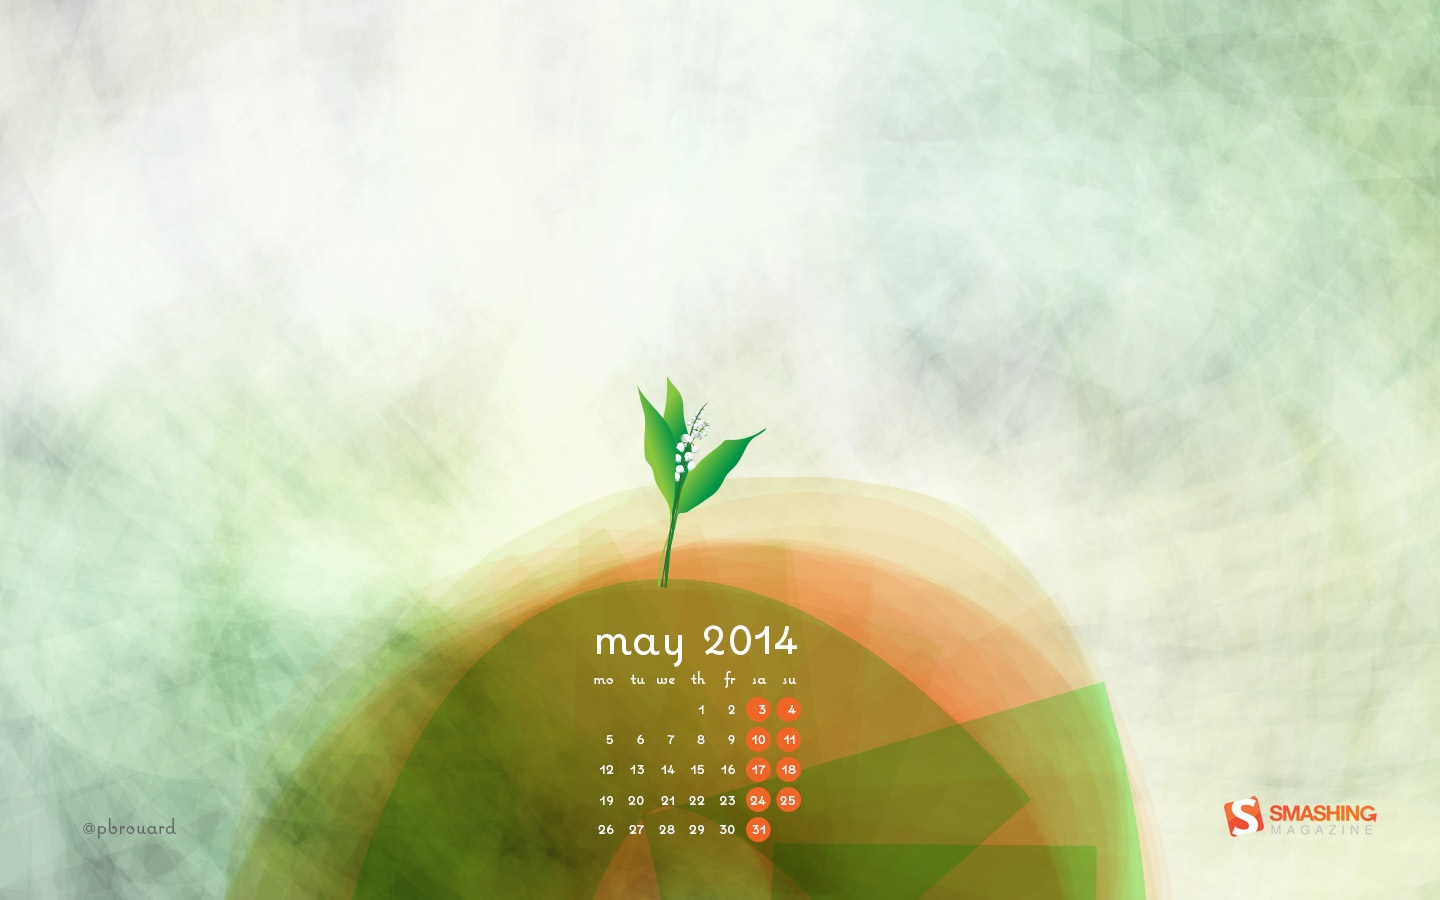 In January Calendar Wallpaper 50543